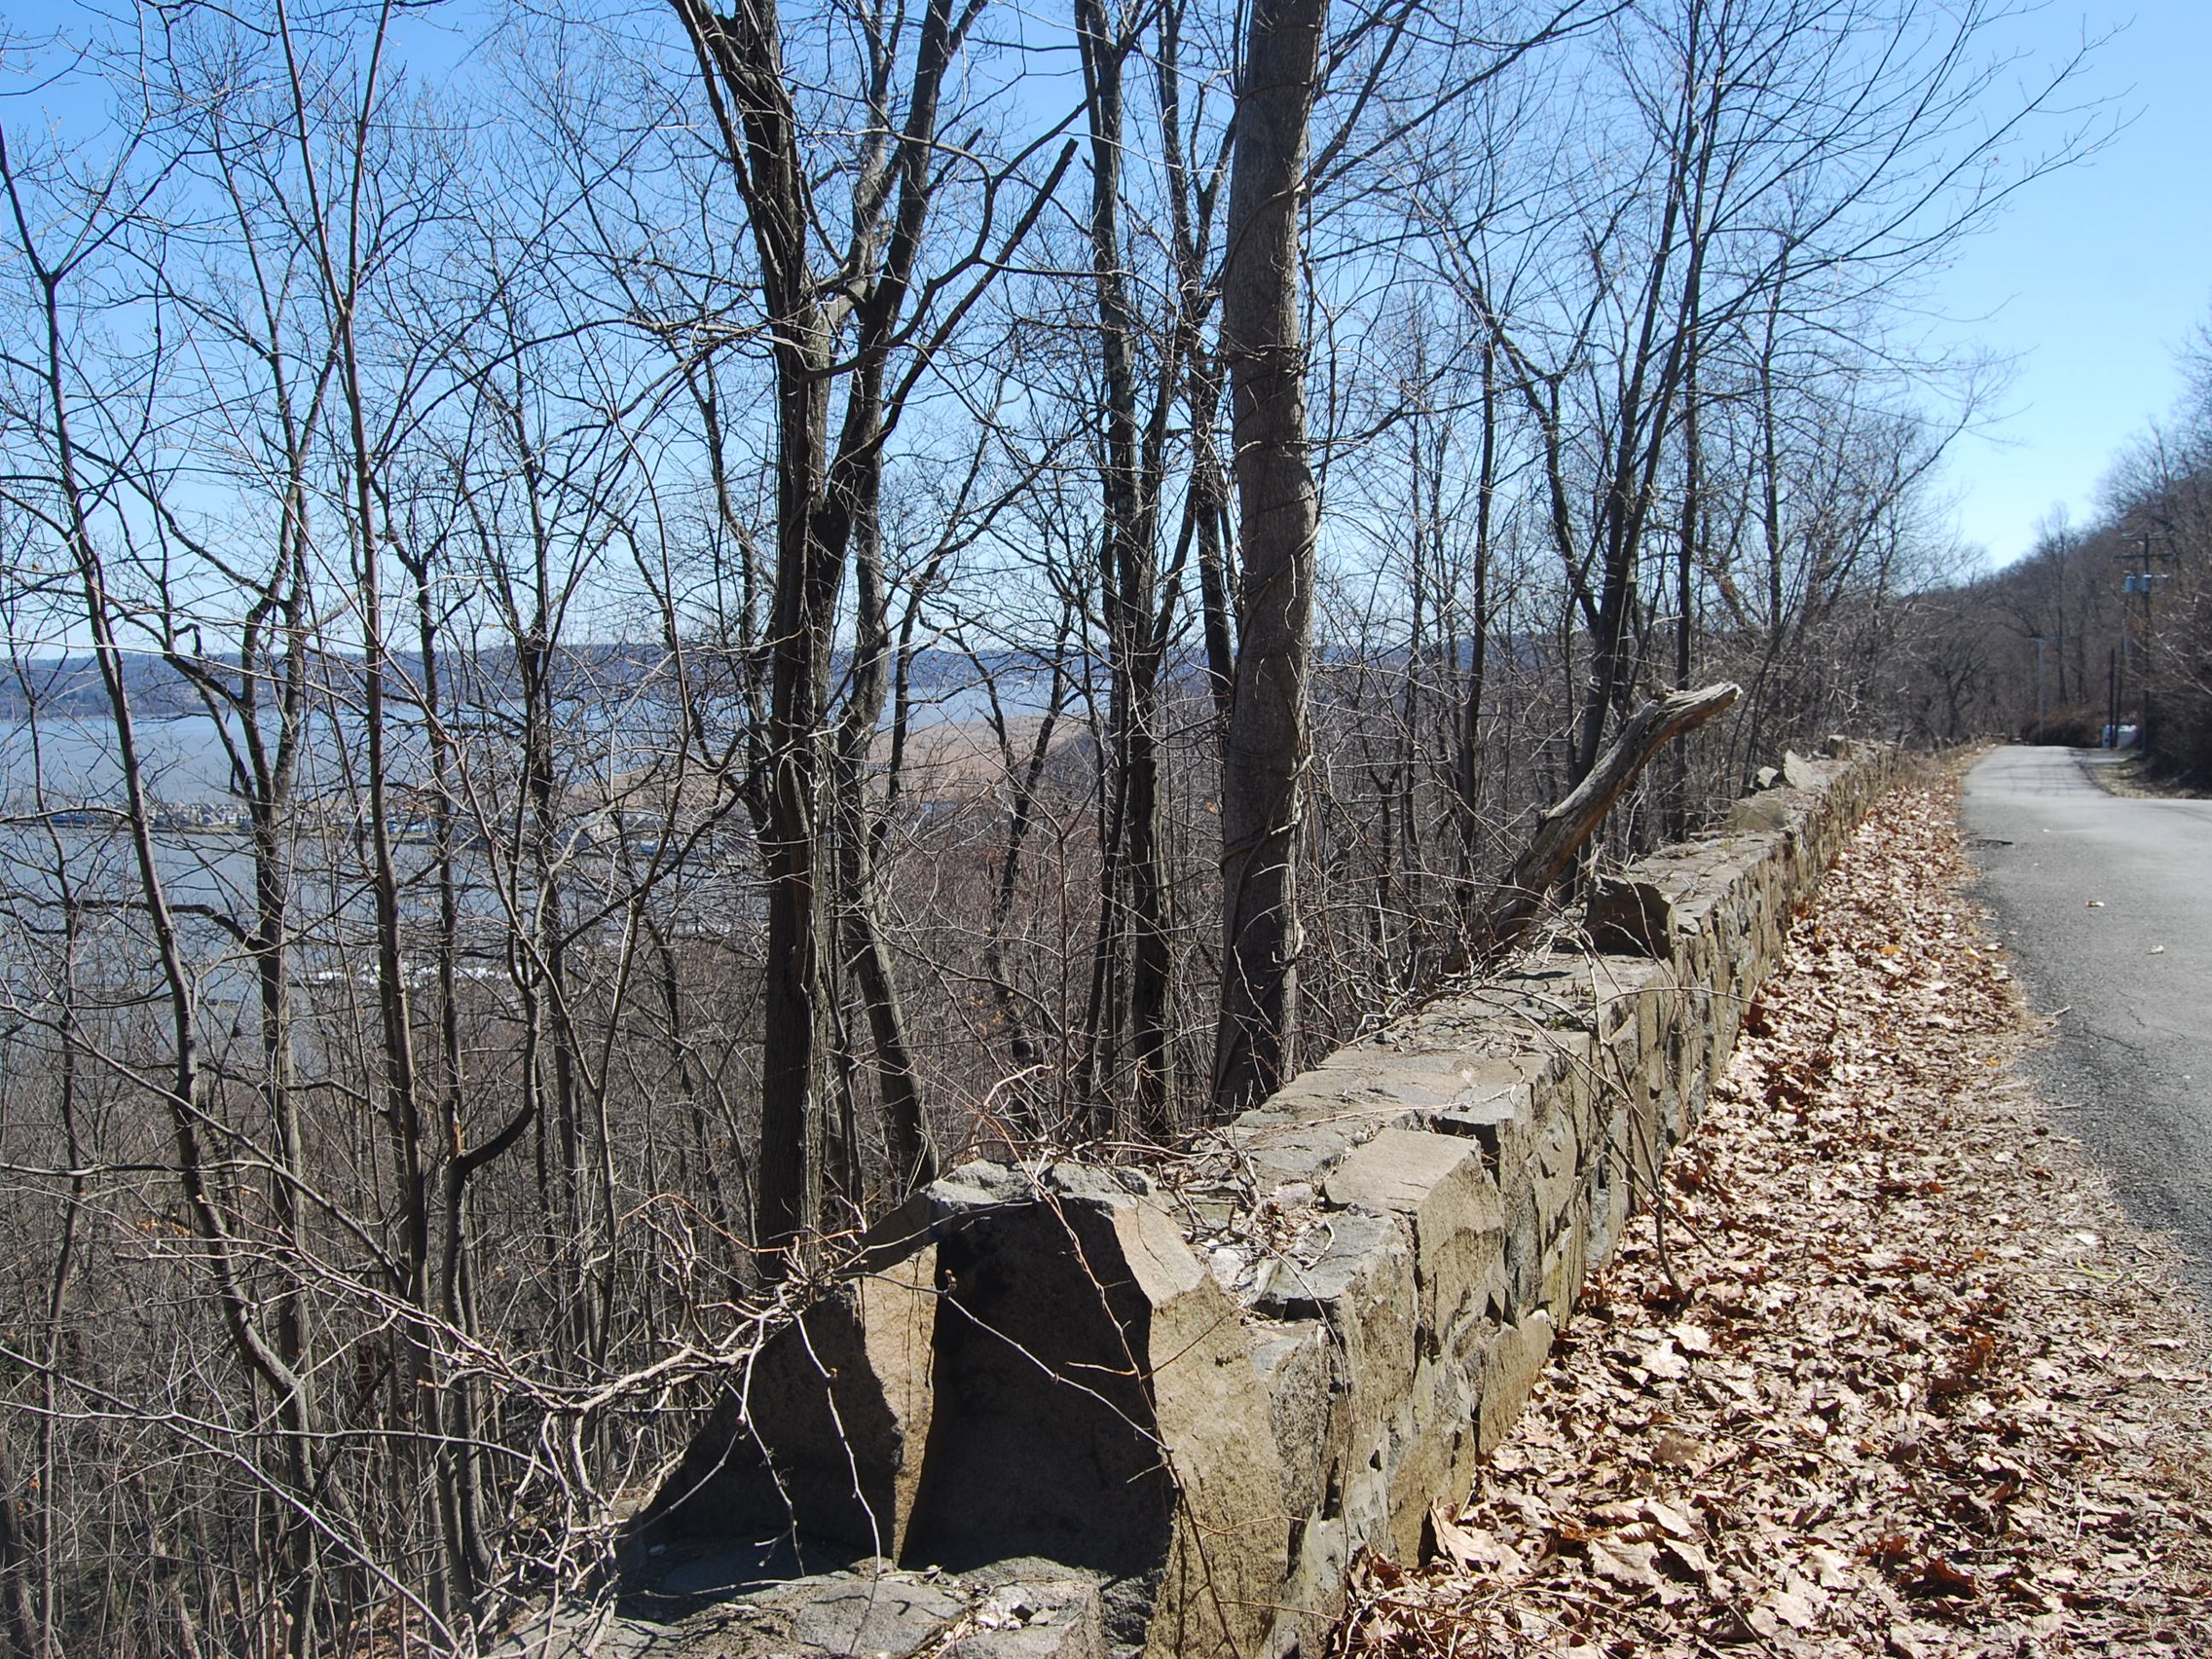 Residential Lots & Land for sale in Tweed Blvd., Upper Grandview, NY ,10960